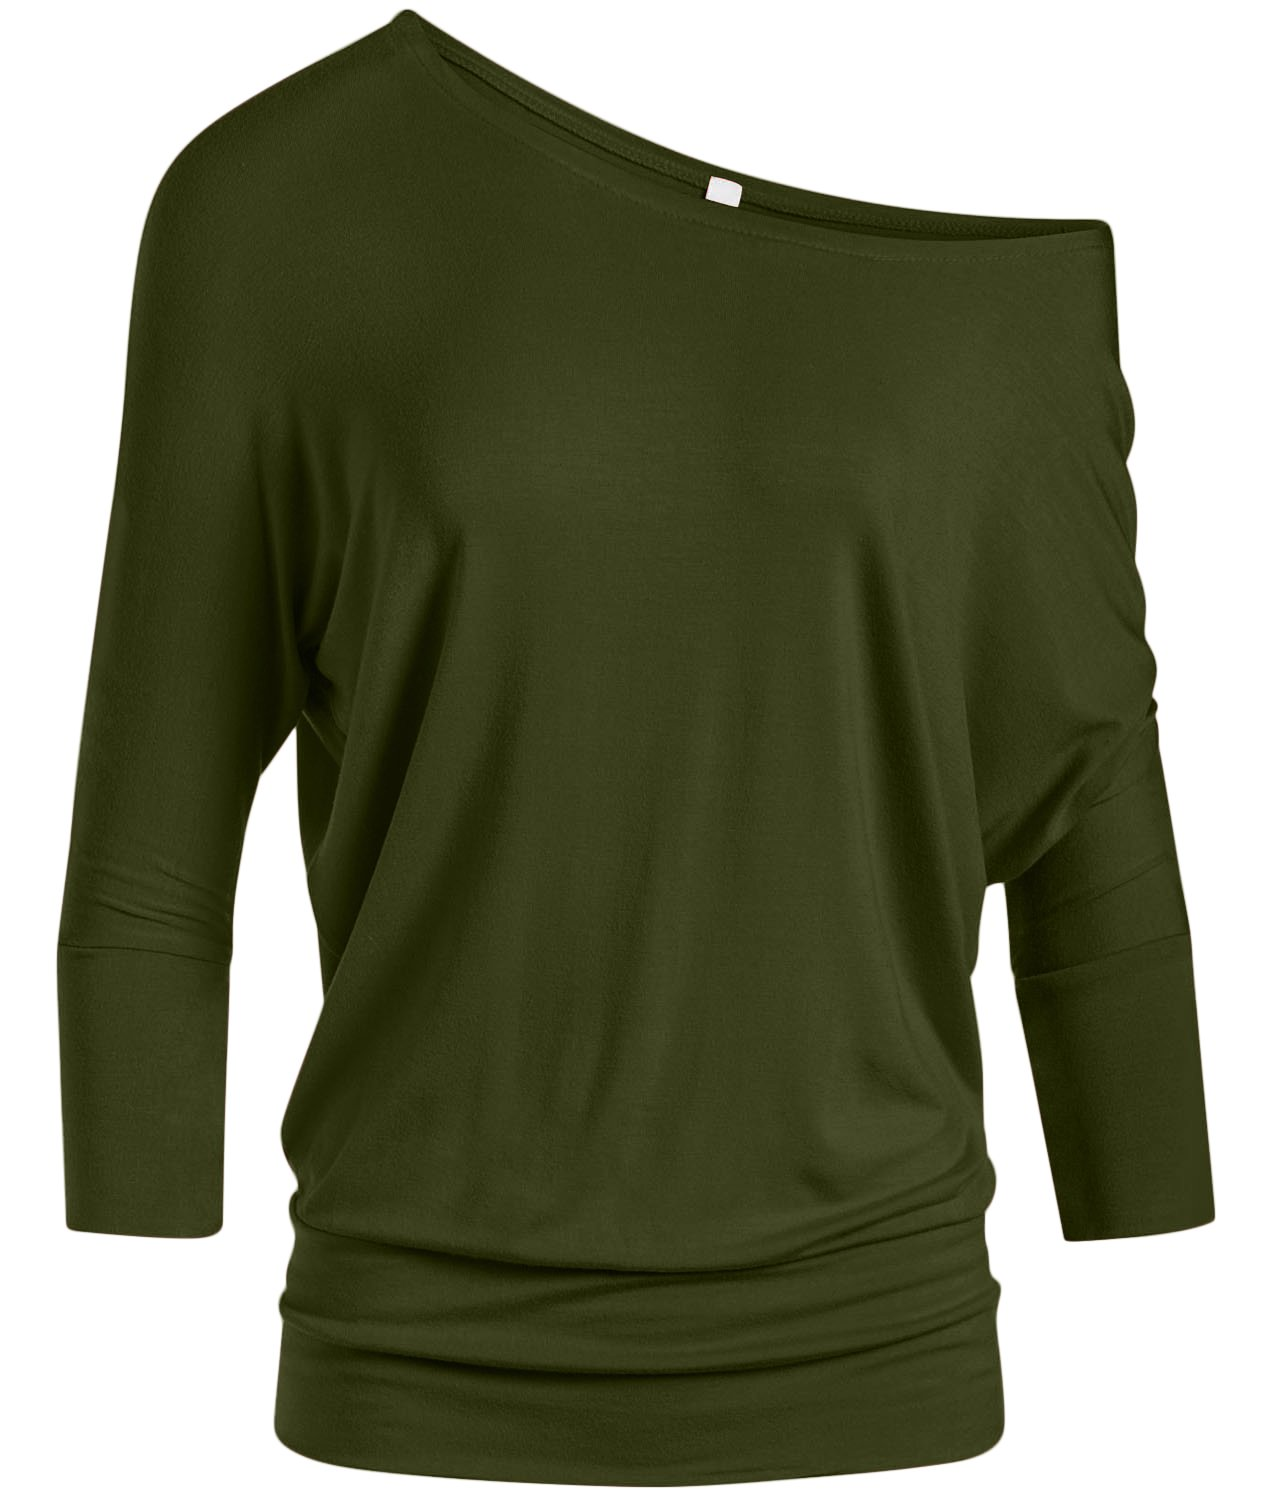 Simlu Dolman 3/4 Sleeve Drape Round Neck Top With Banded Waist - Made In USA, Olive, Small